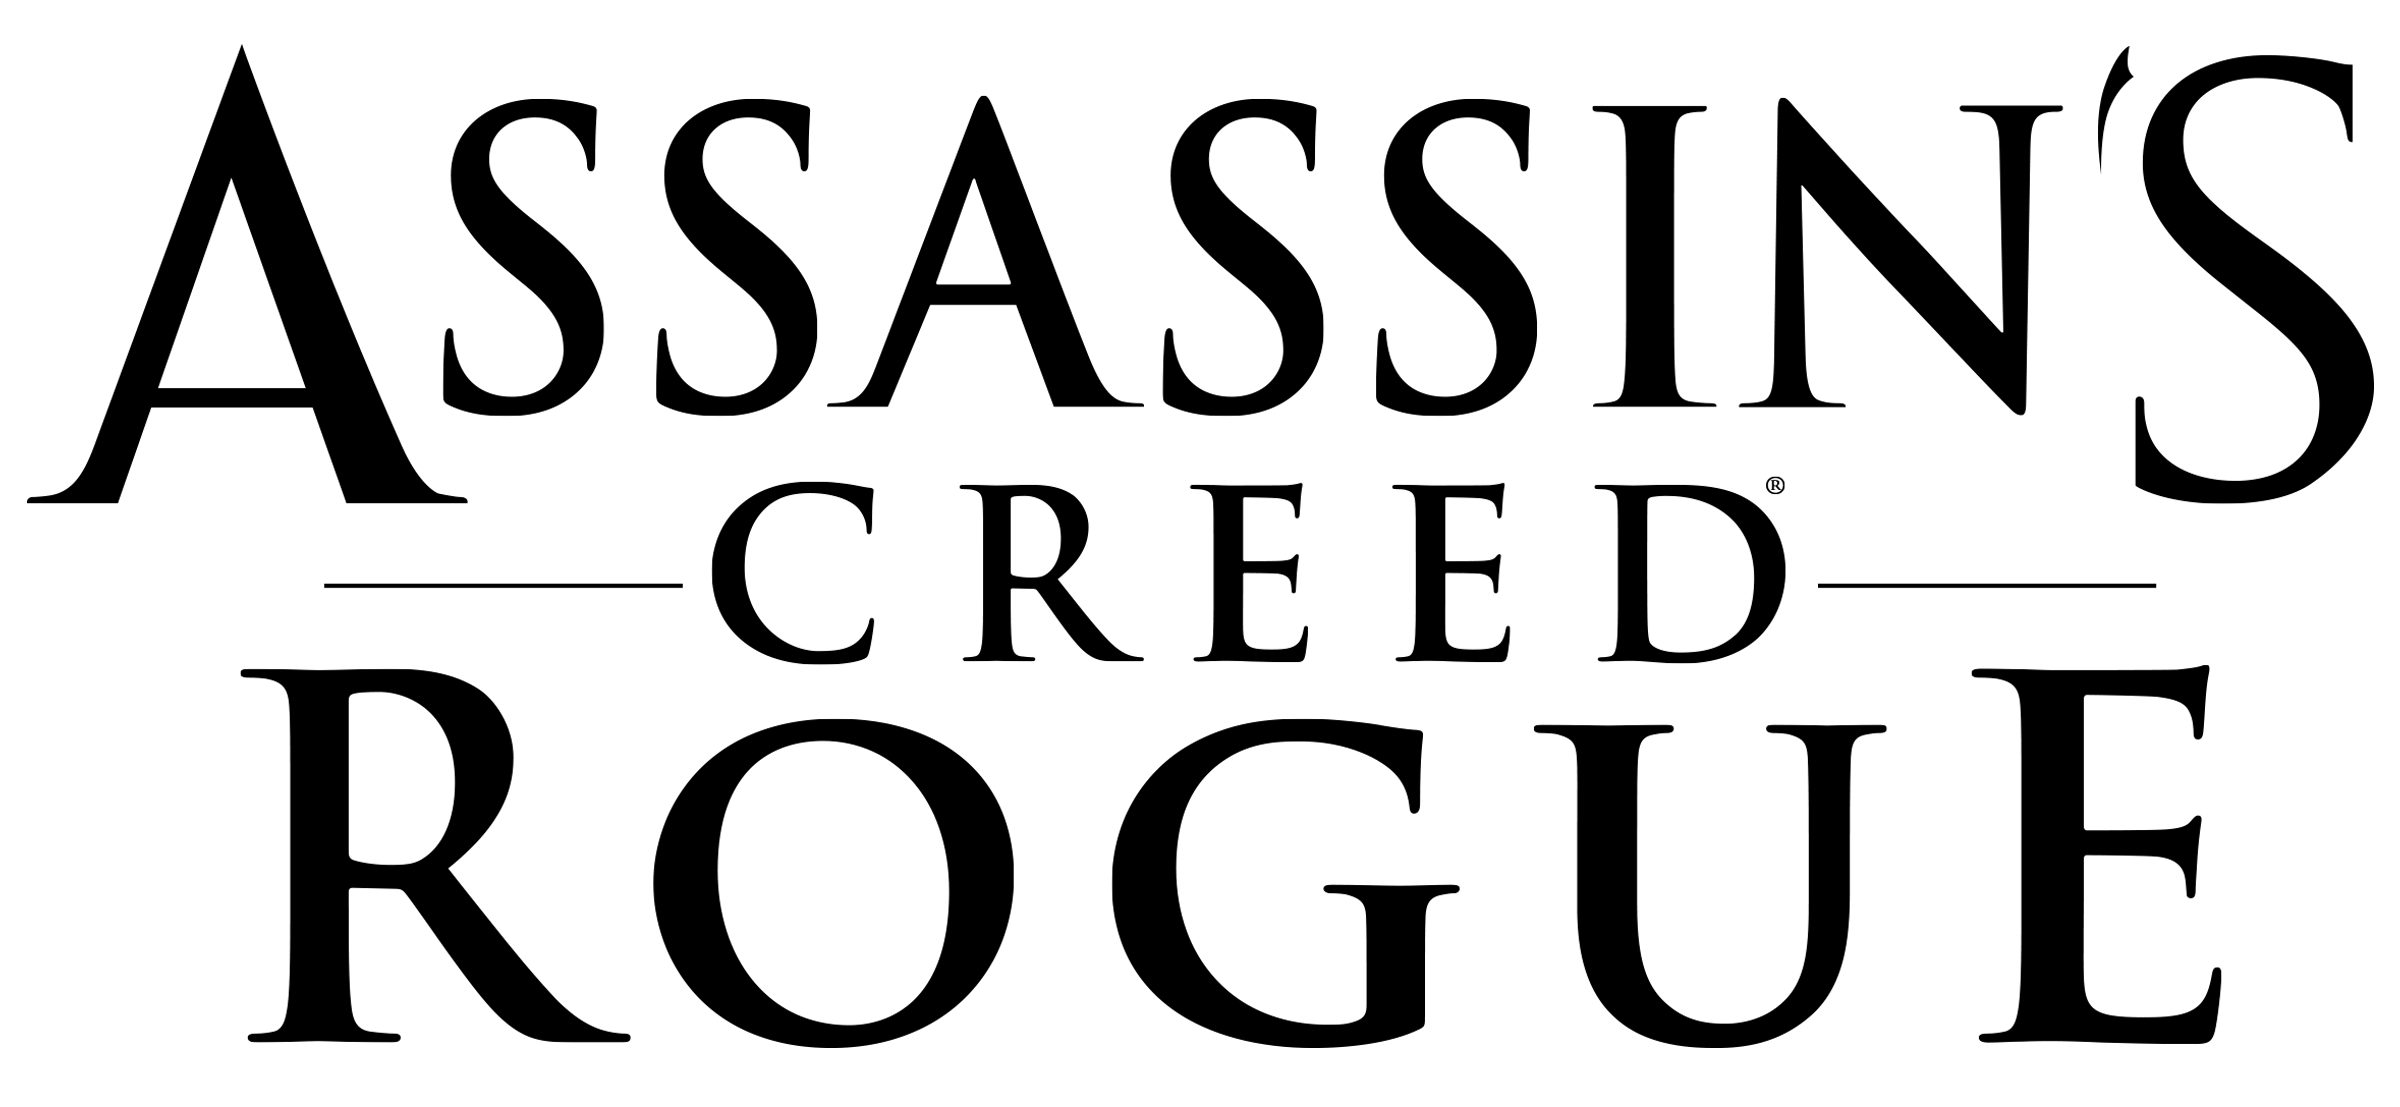 Creed band logo png. Assassins rogue announced with